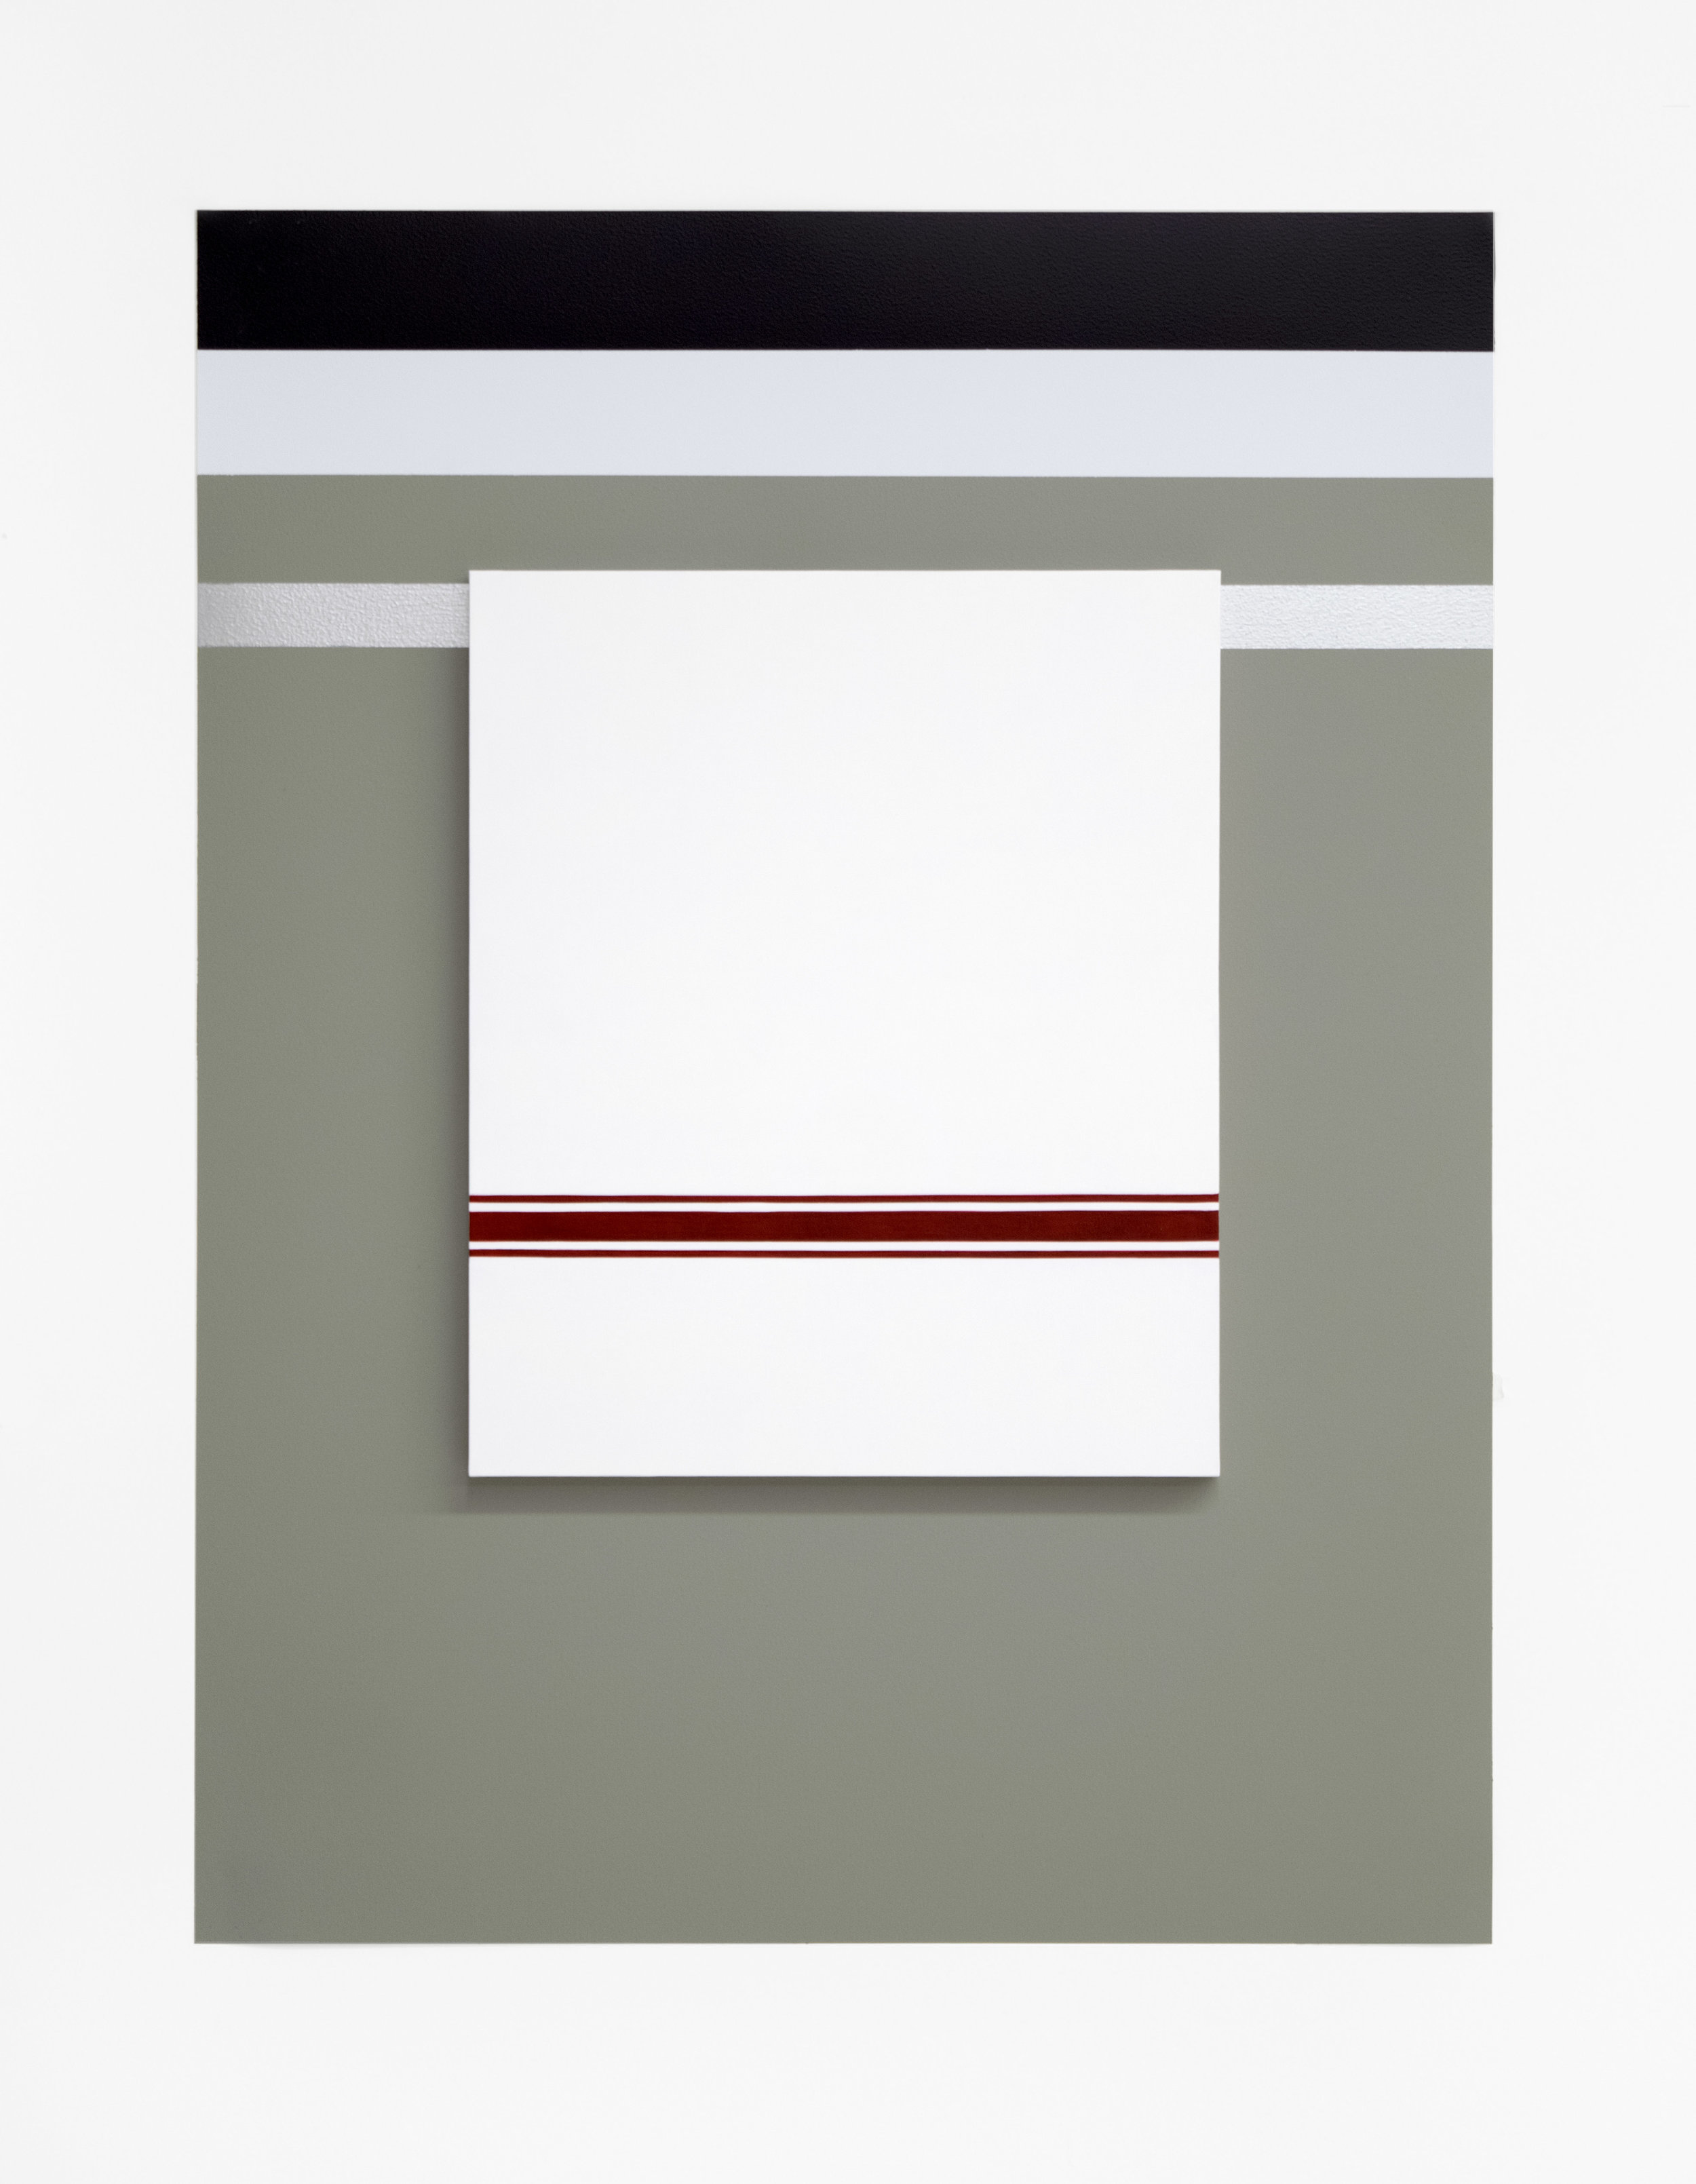 "Self Portrait No. 3   2019, 28"" h x 21"" w x 3/4"" d (overall).  1 Painting: 14 ½"" x 12"" x 3/4"", oil on linen over panel.  Wall: Benjamin Moore House paints: Secret #AF-710,  White Diamond #2121-60, #Black Berry 2119-20, silver paint."